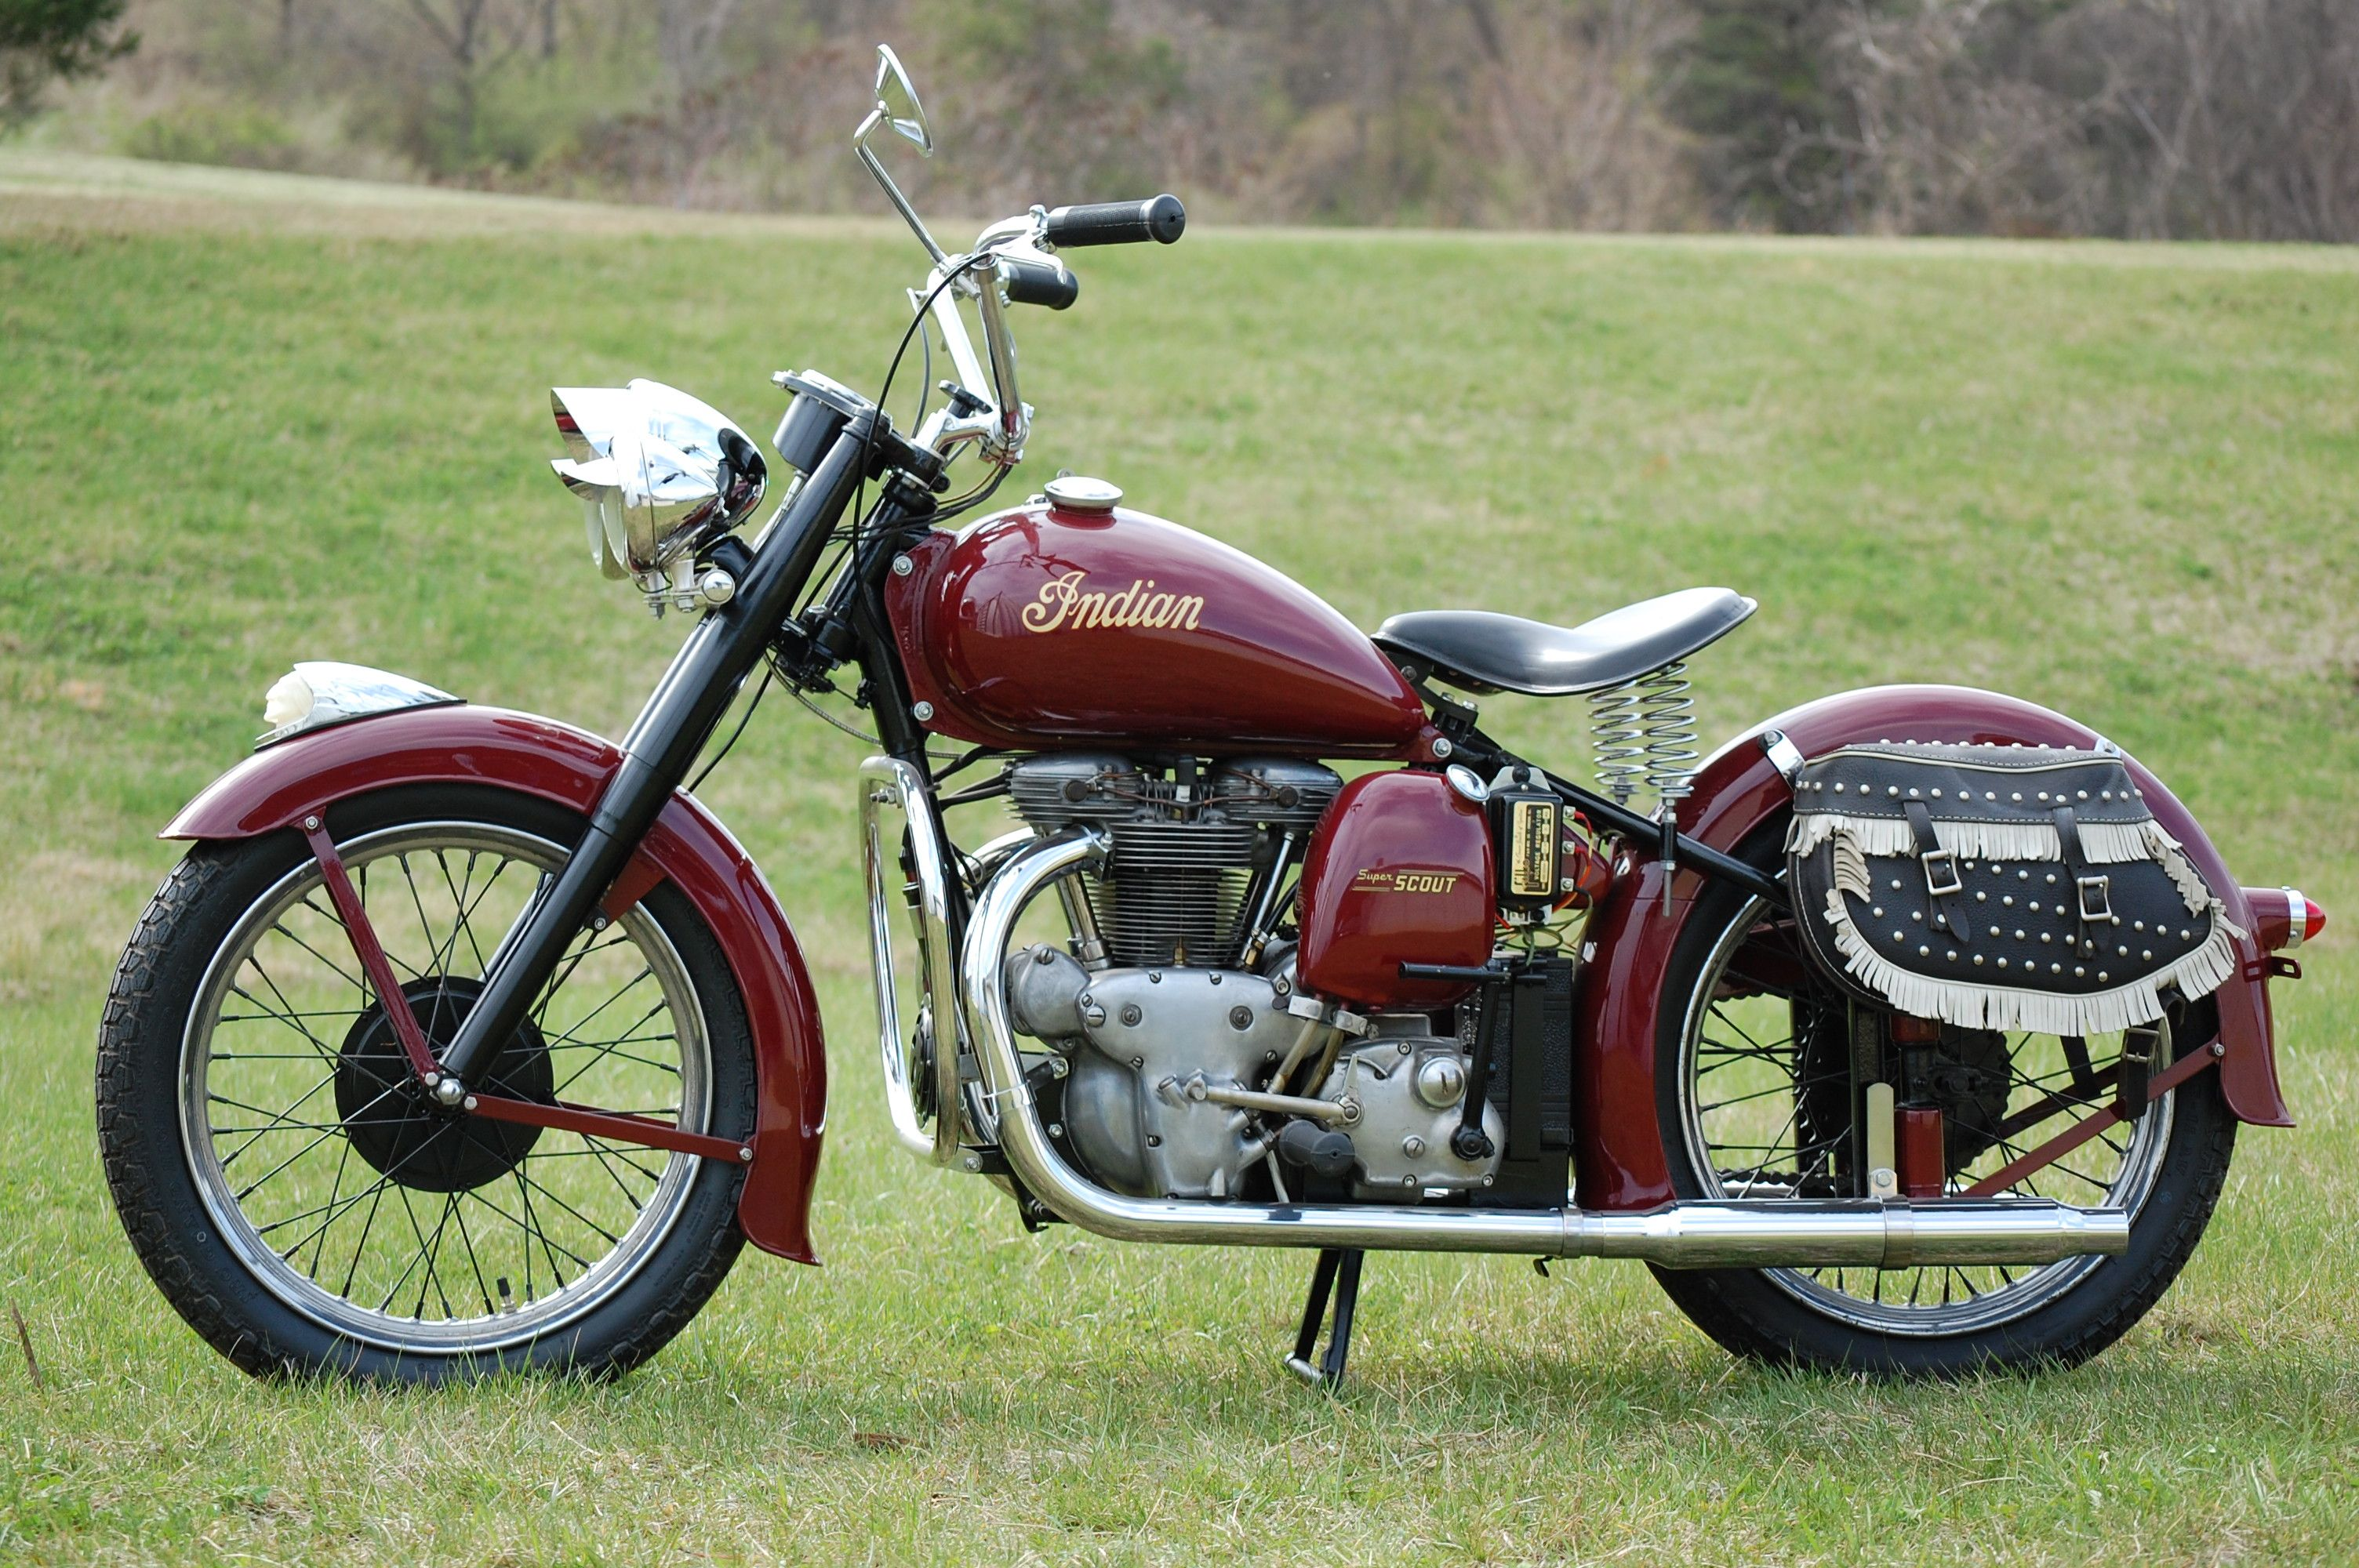 1949 Indian Model 249 Super Scout this was the start of